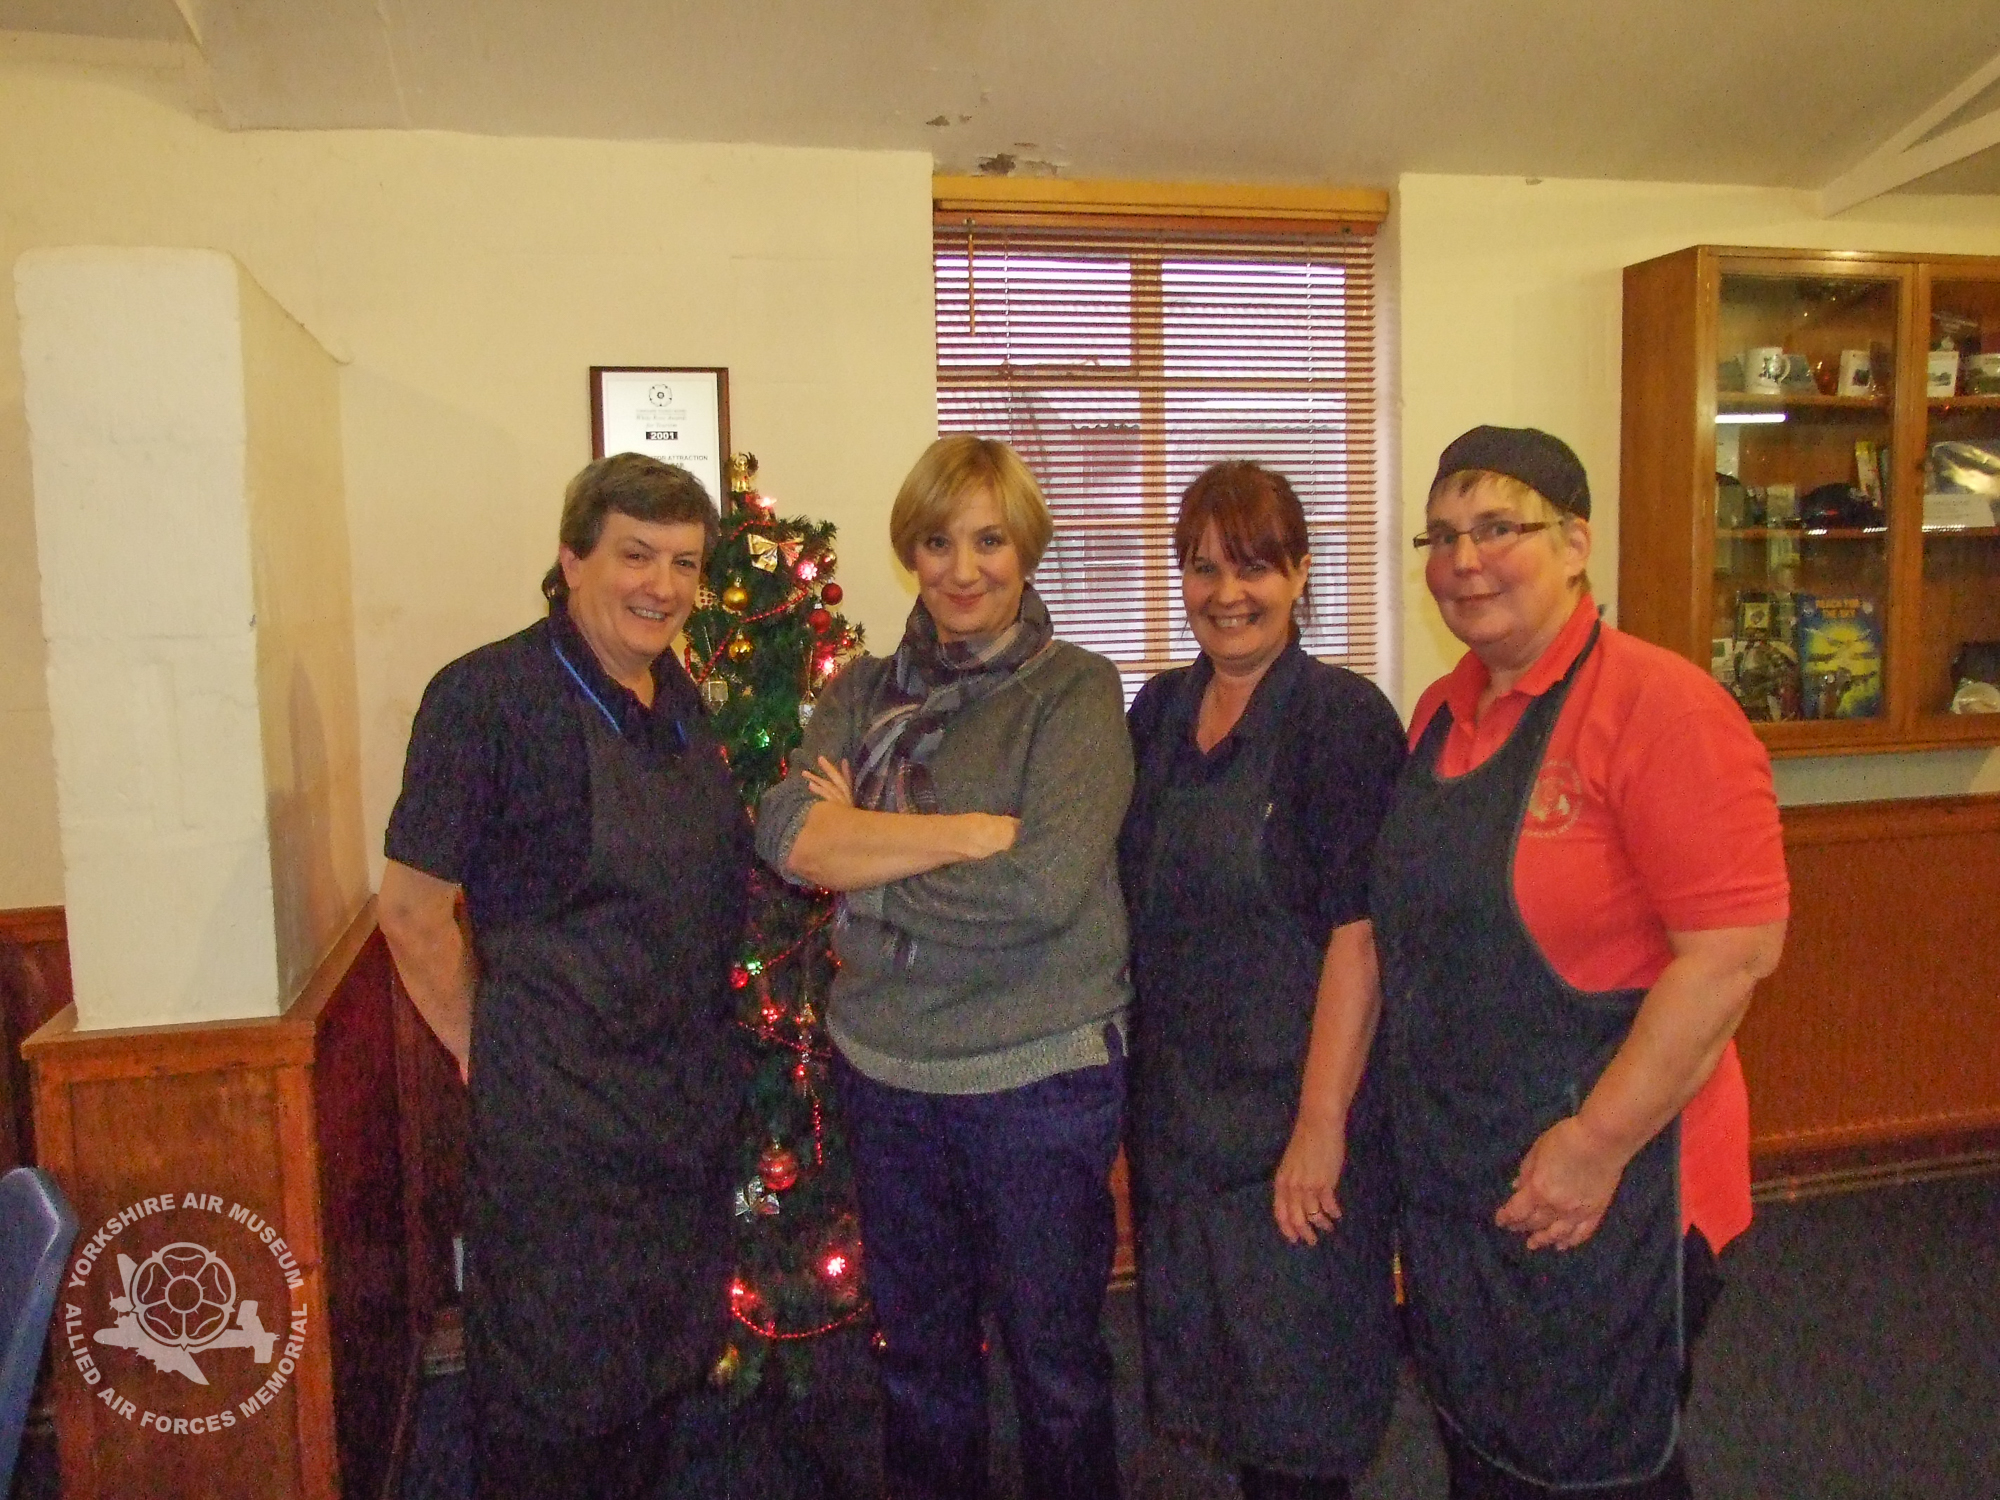 From left to right, YAM catering assistant Jan Handley; Victoria Wood; catering assistant Pam Handley (she and Jan are sisters in law! and finally catering assistant Kath Mellor.